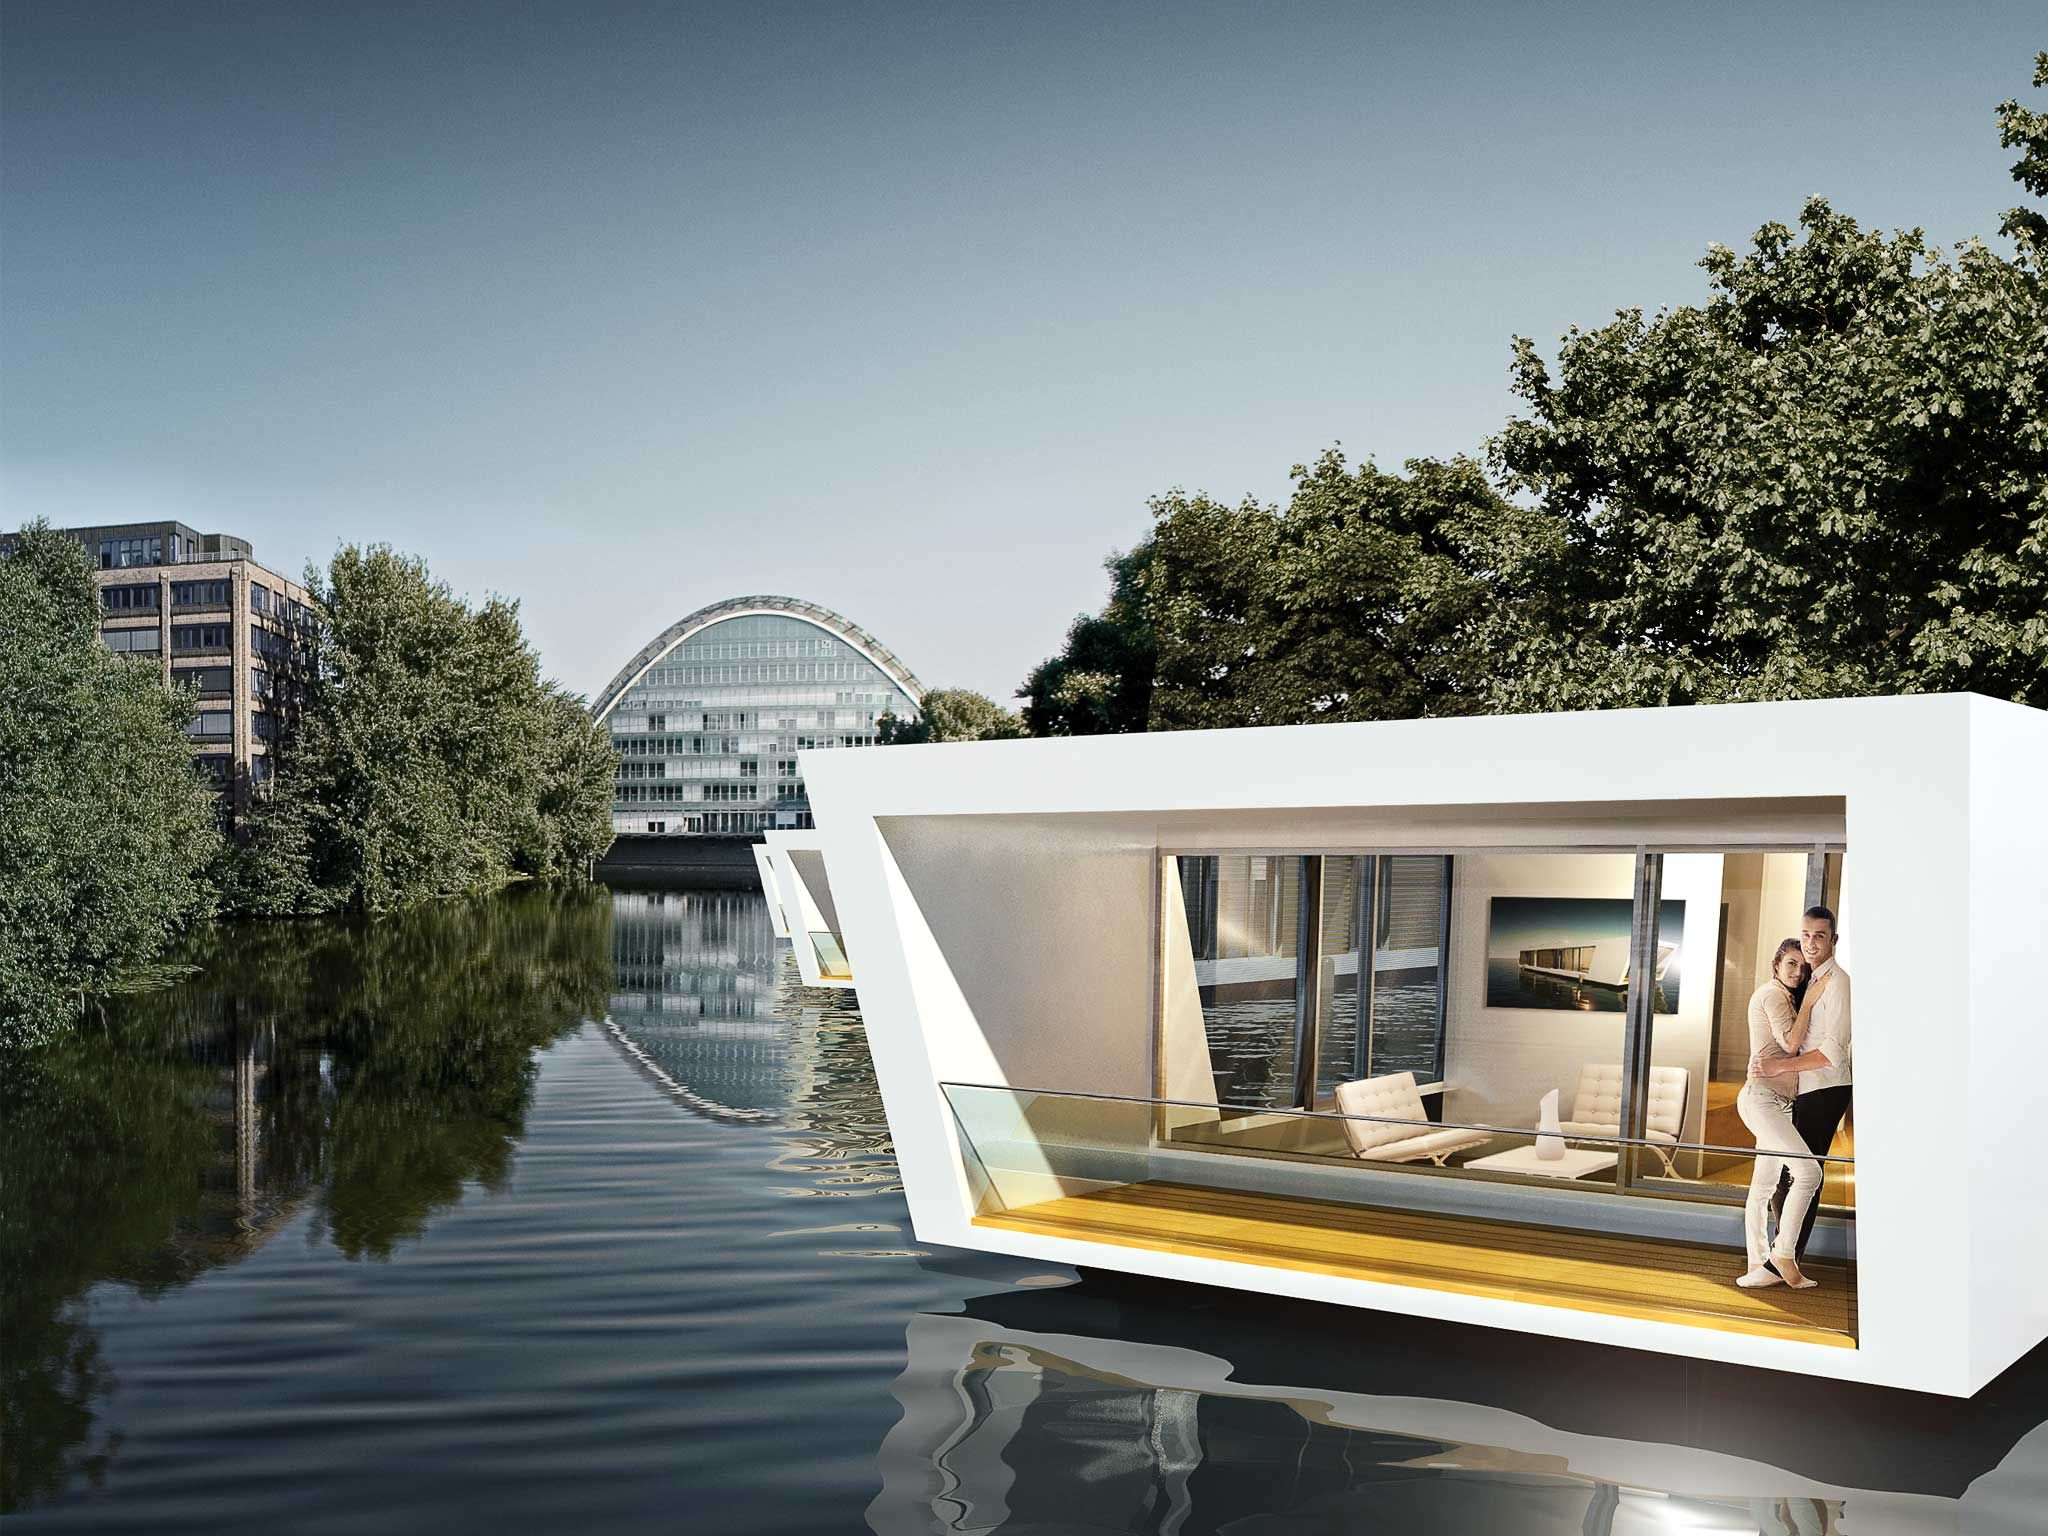 floating homes in hamburg architecture pontoon house on water houseboats floating. Black Bedroom Furniture Sets. Home Design Ideas